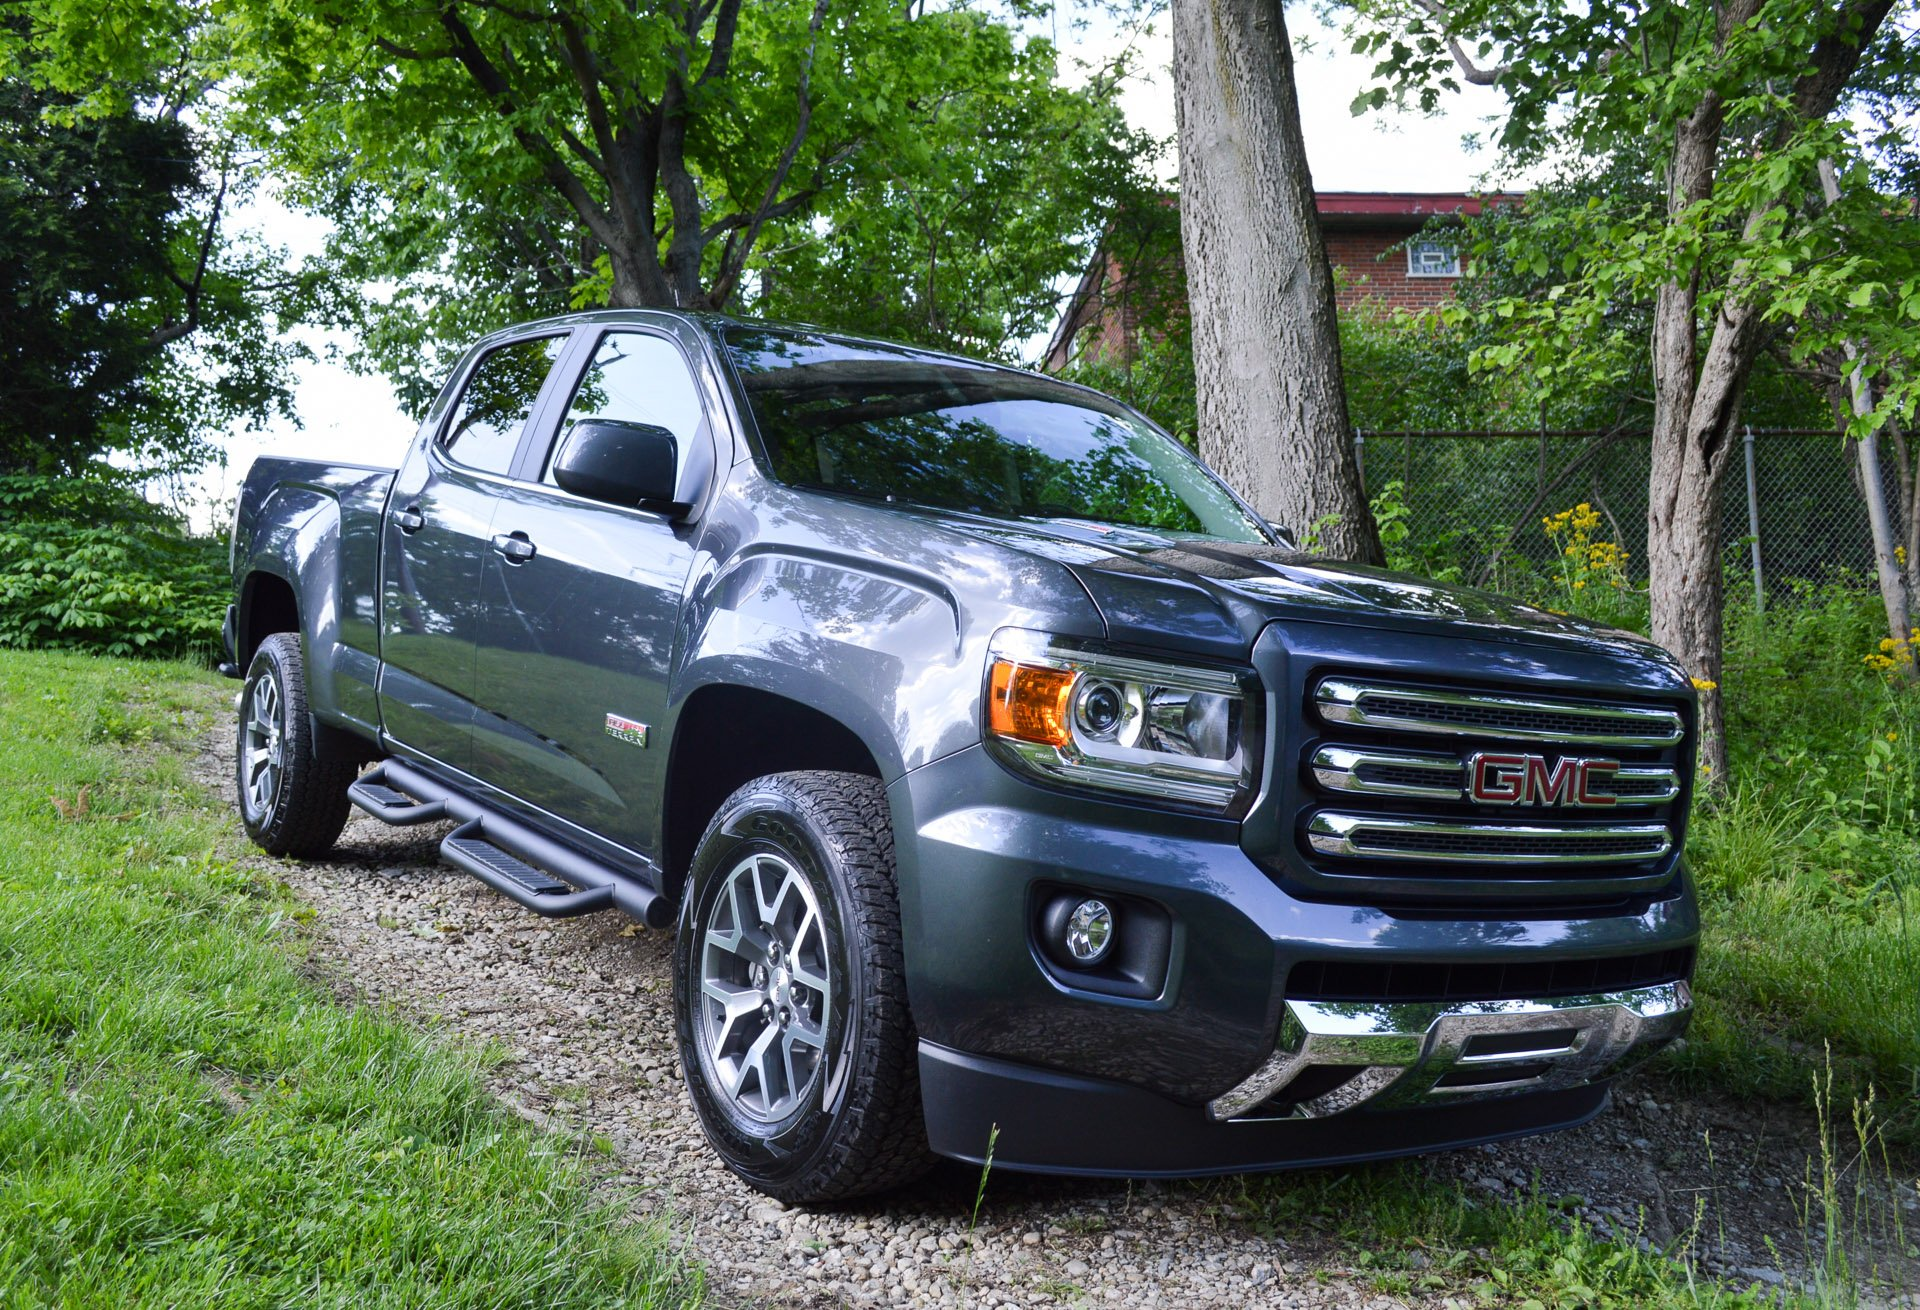 gmc arrives trucks with look sierra apple new carplay more blog features detailed